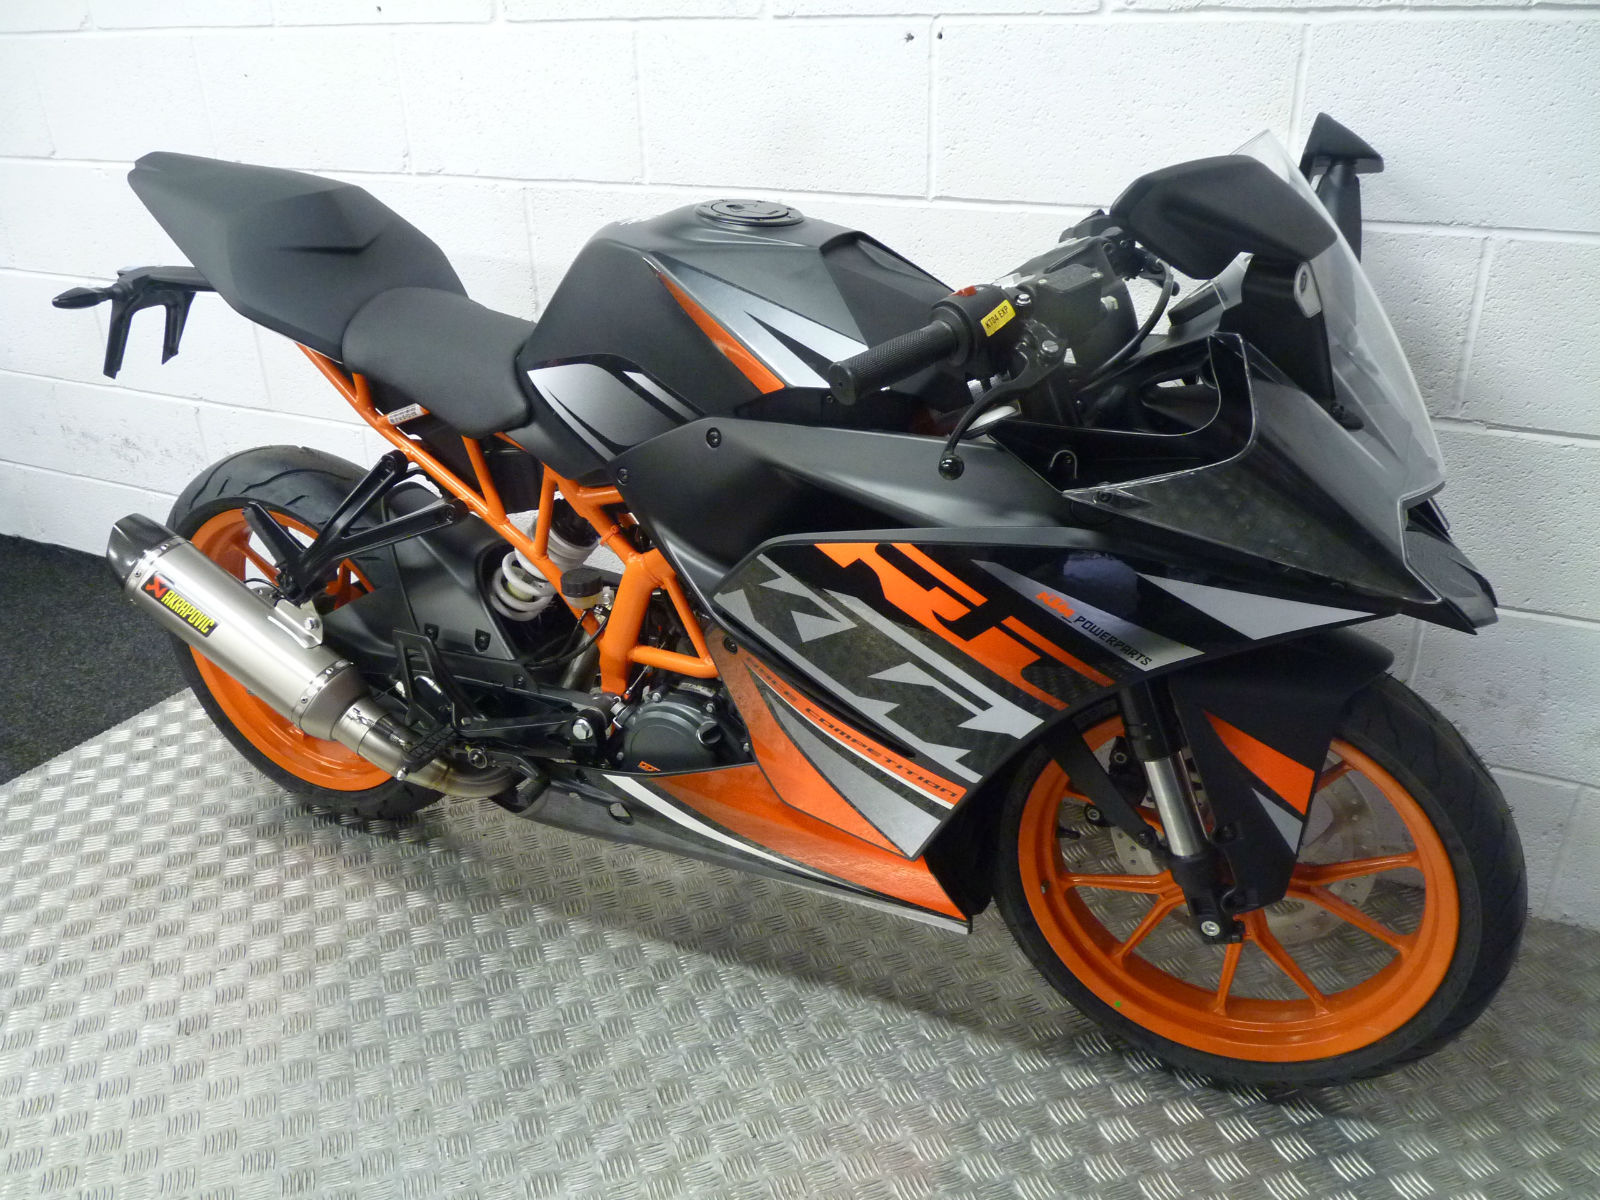 ktm rc 125 2015 sports bike now with free akrapovic. Black Bedroom Furniture Sets. Home Design Ideas